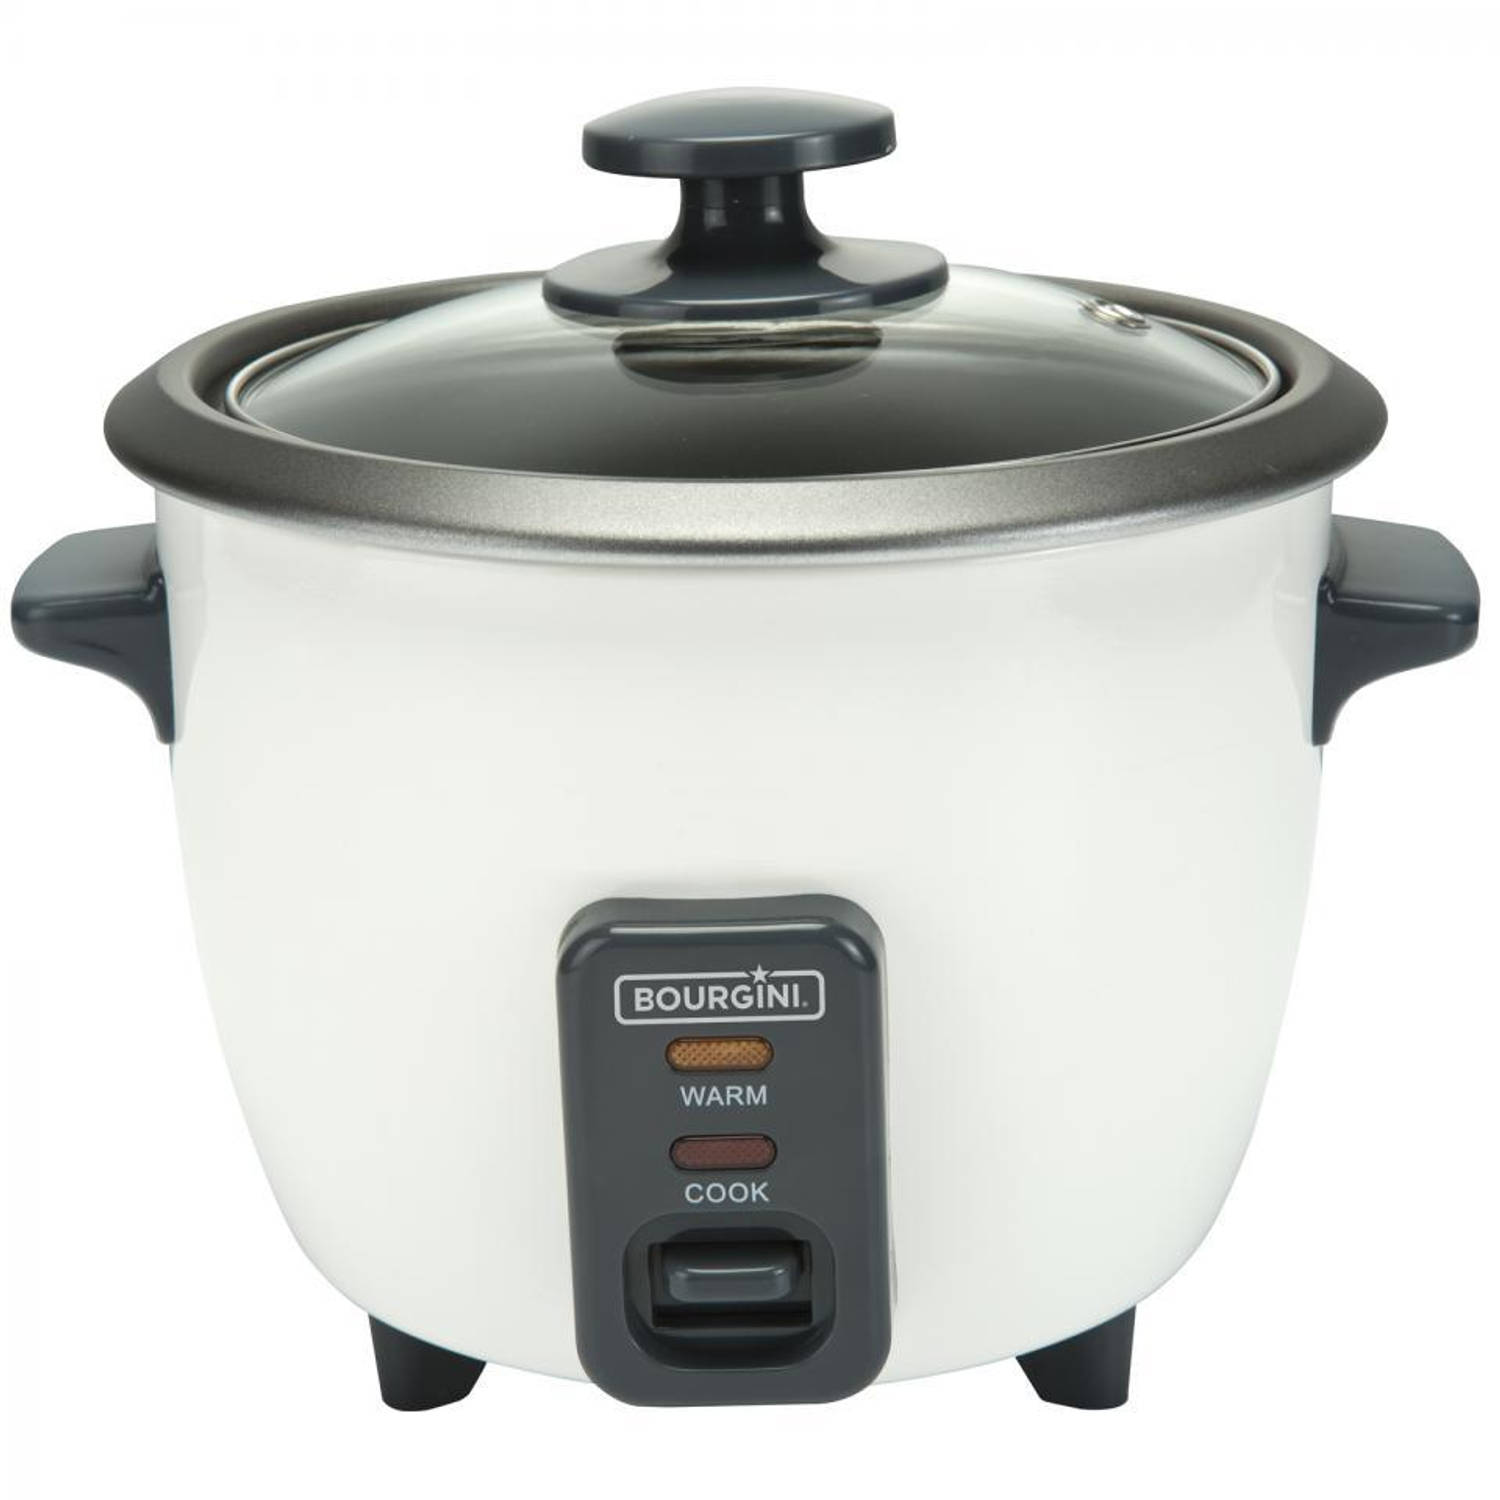 Bourgini Easy Rice Cooker 27.1000.00.00 - 0.6L